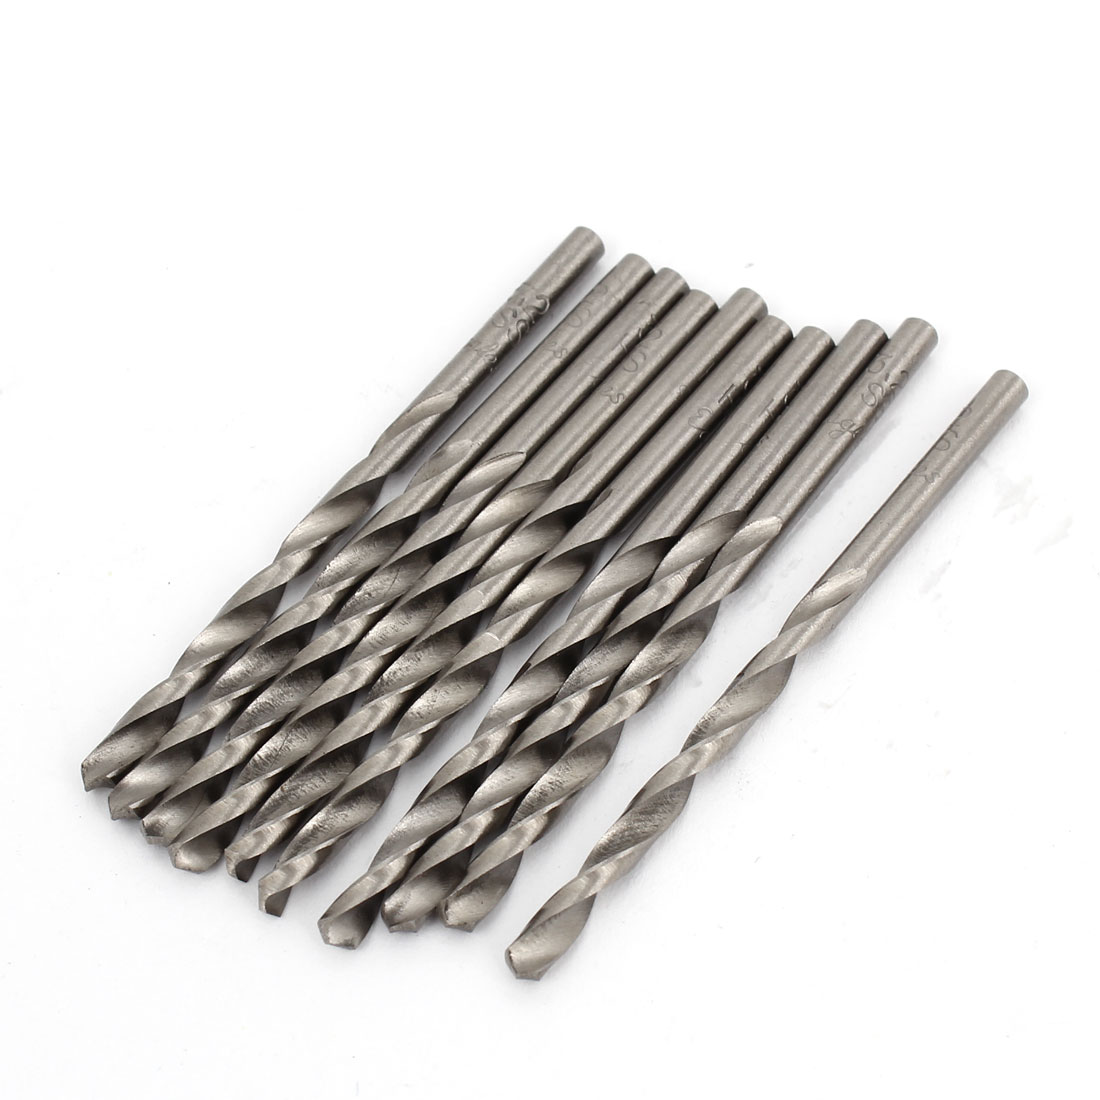 10pcs 3.2mmx40mm High Speed Steel Straight Shank 2 Flutes Twist Drilling Bit